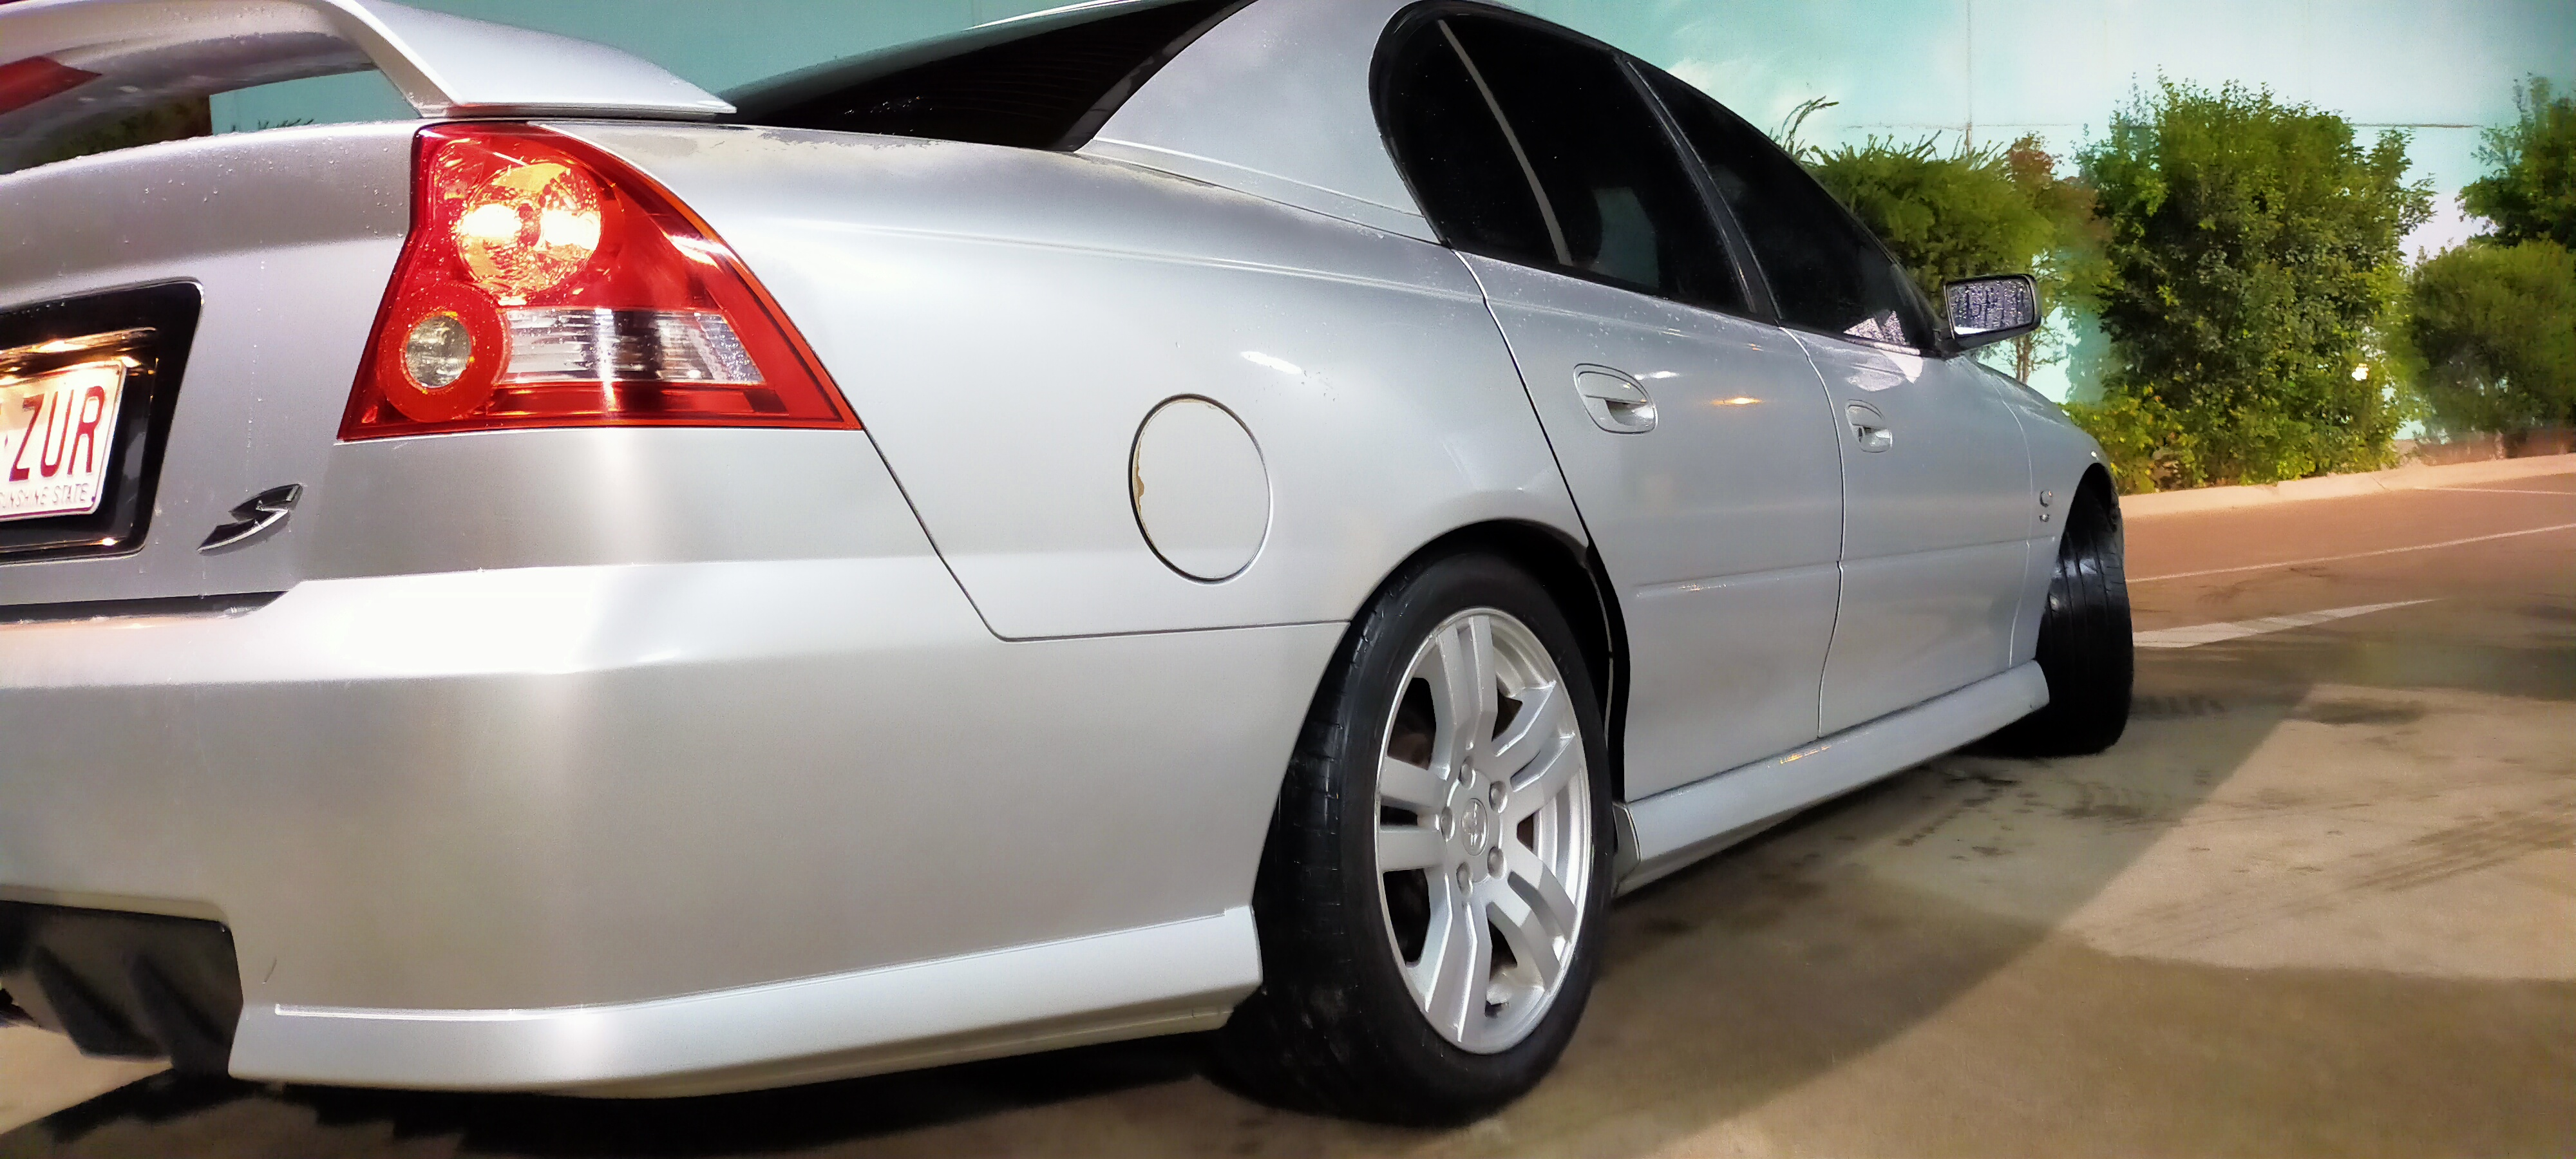 2003 Holden Commodore S VY